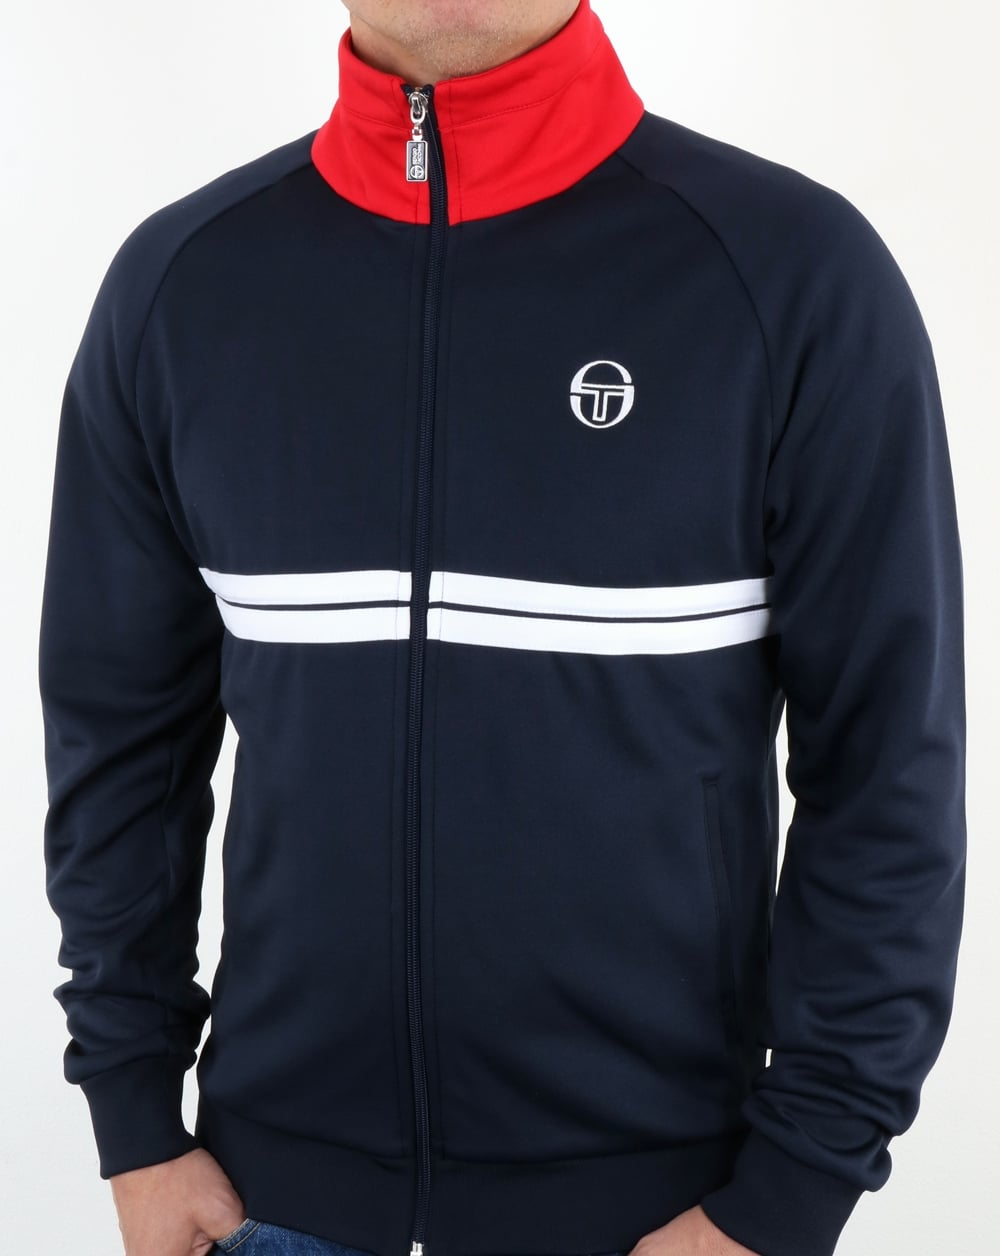 sergio-tacchini-dallas-track-top-navy-red-white-